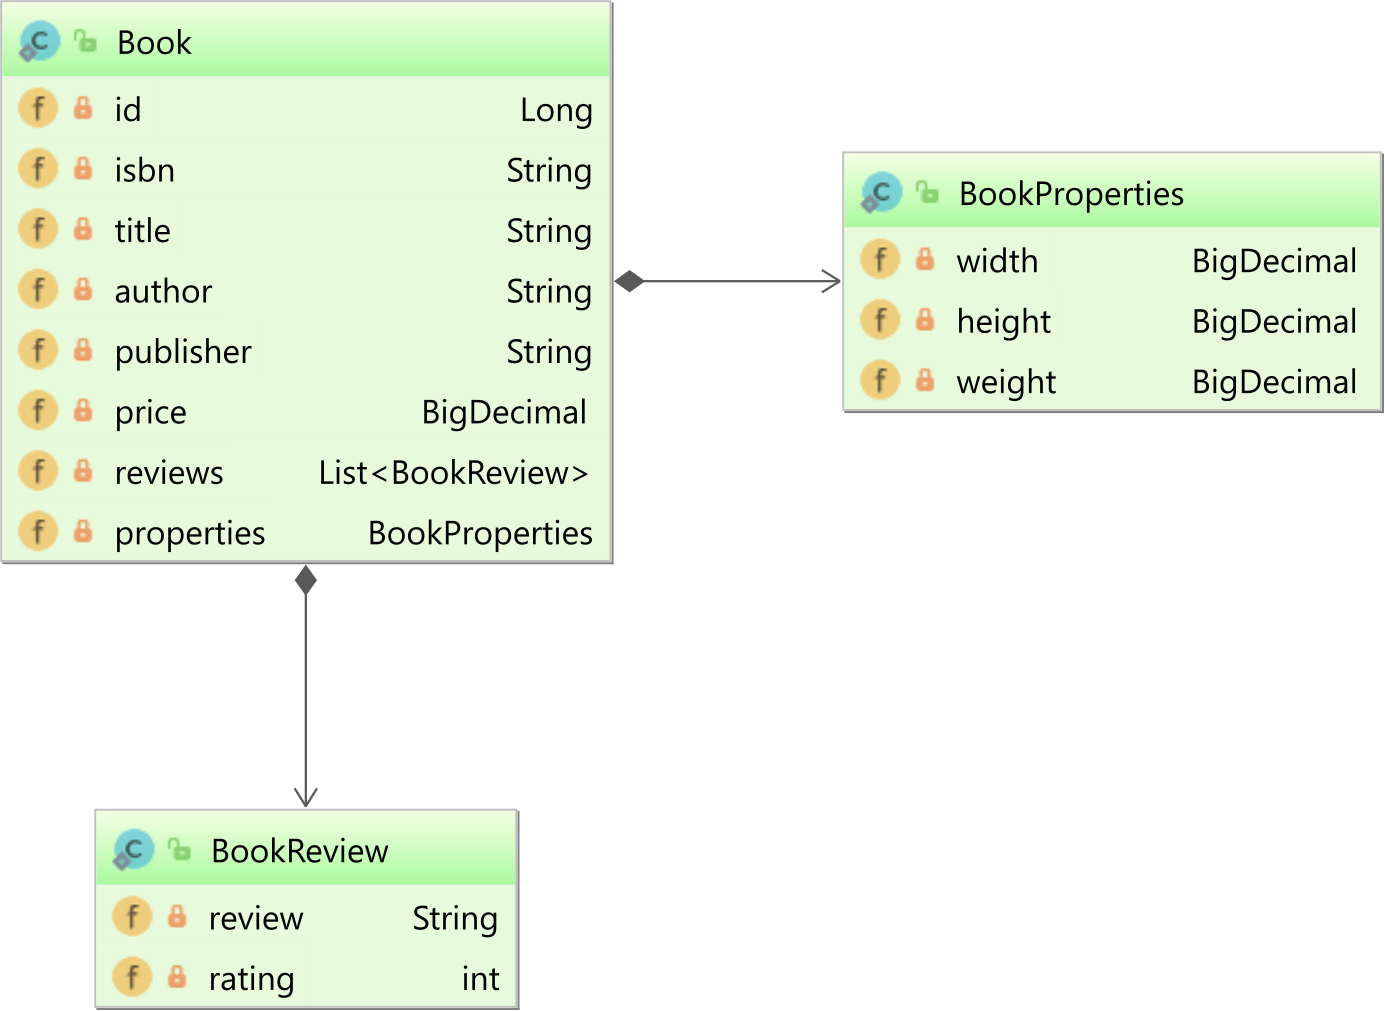 Book entity with JSON Object and List properties